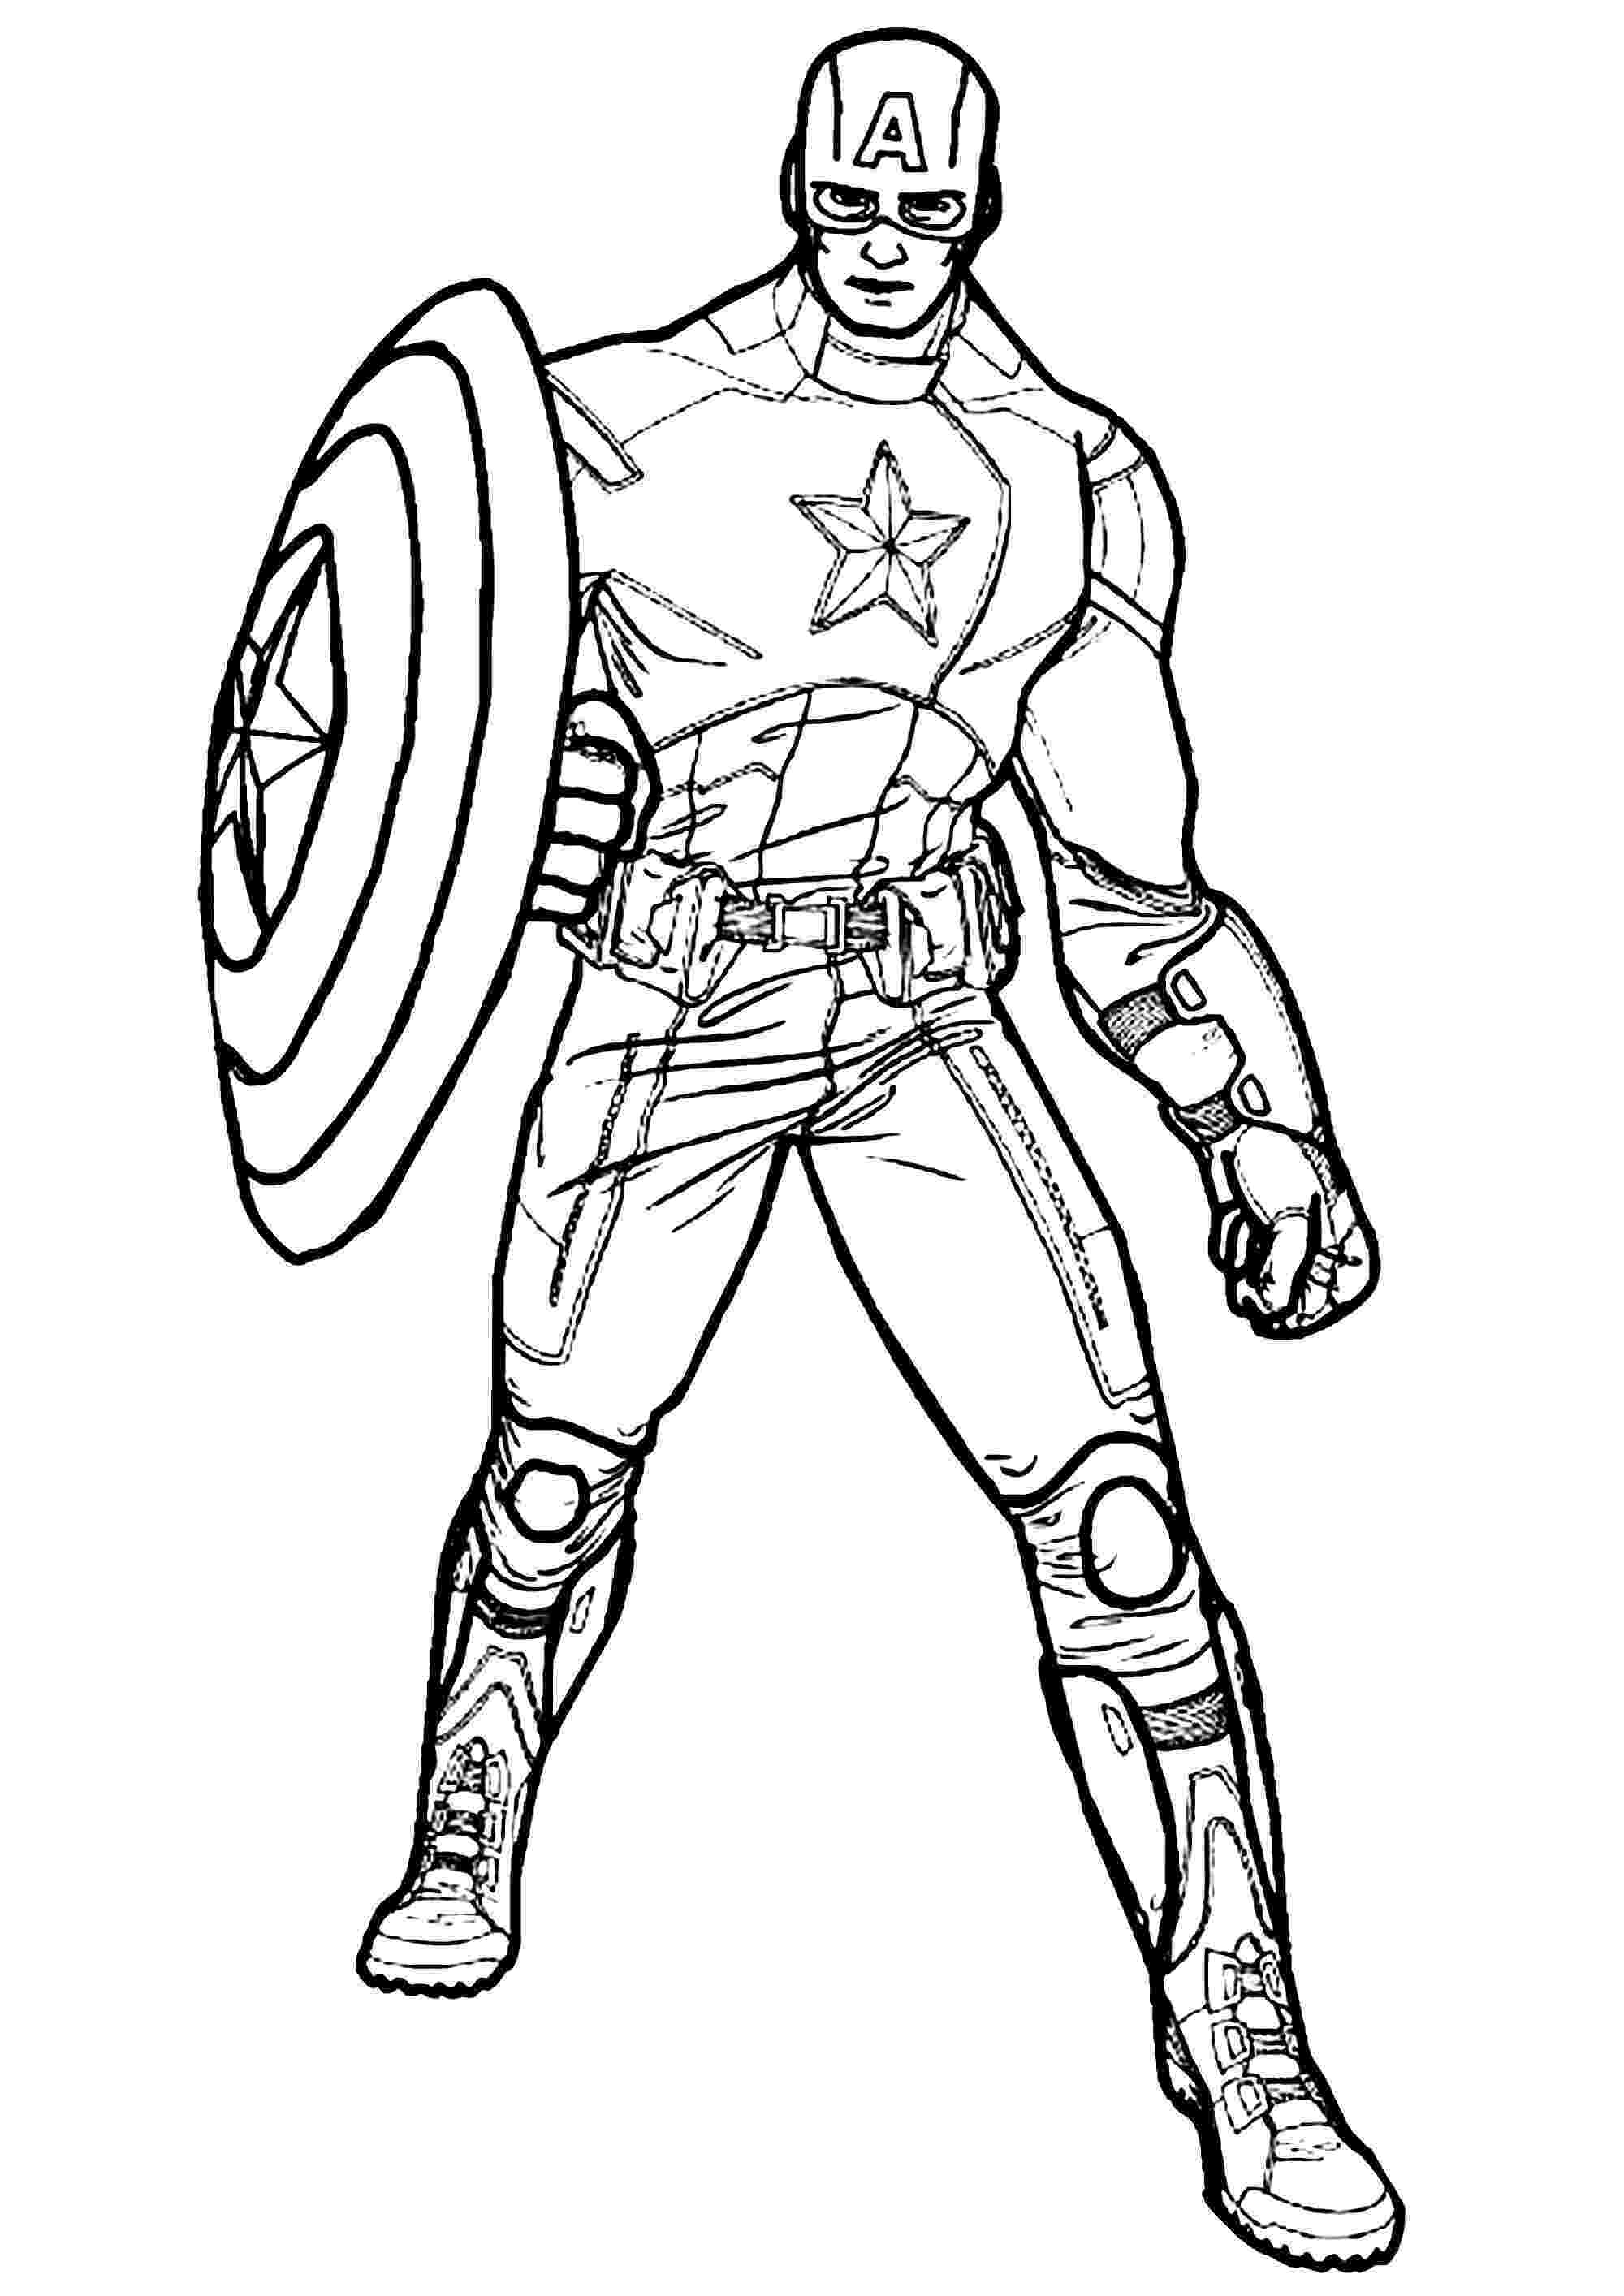 captain america printable captain america captain america kids coloring pages america printable captain